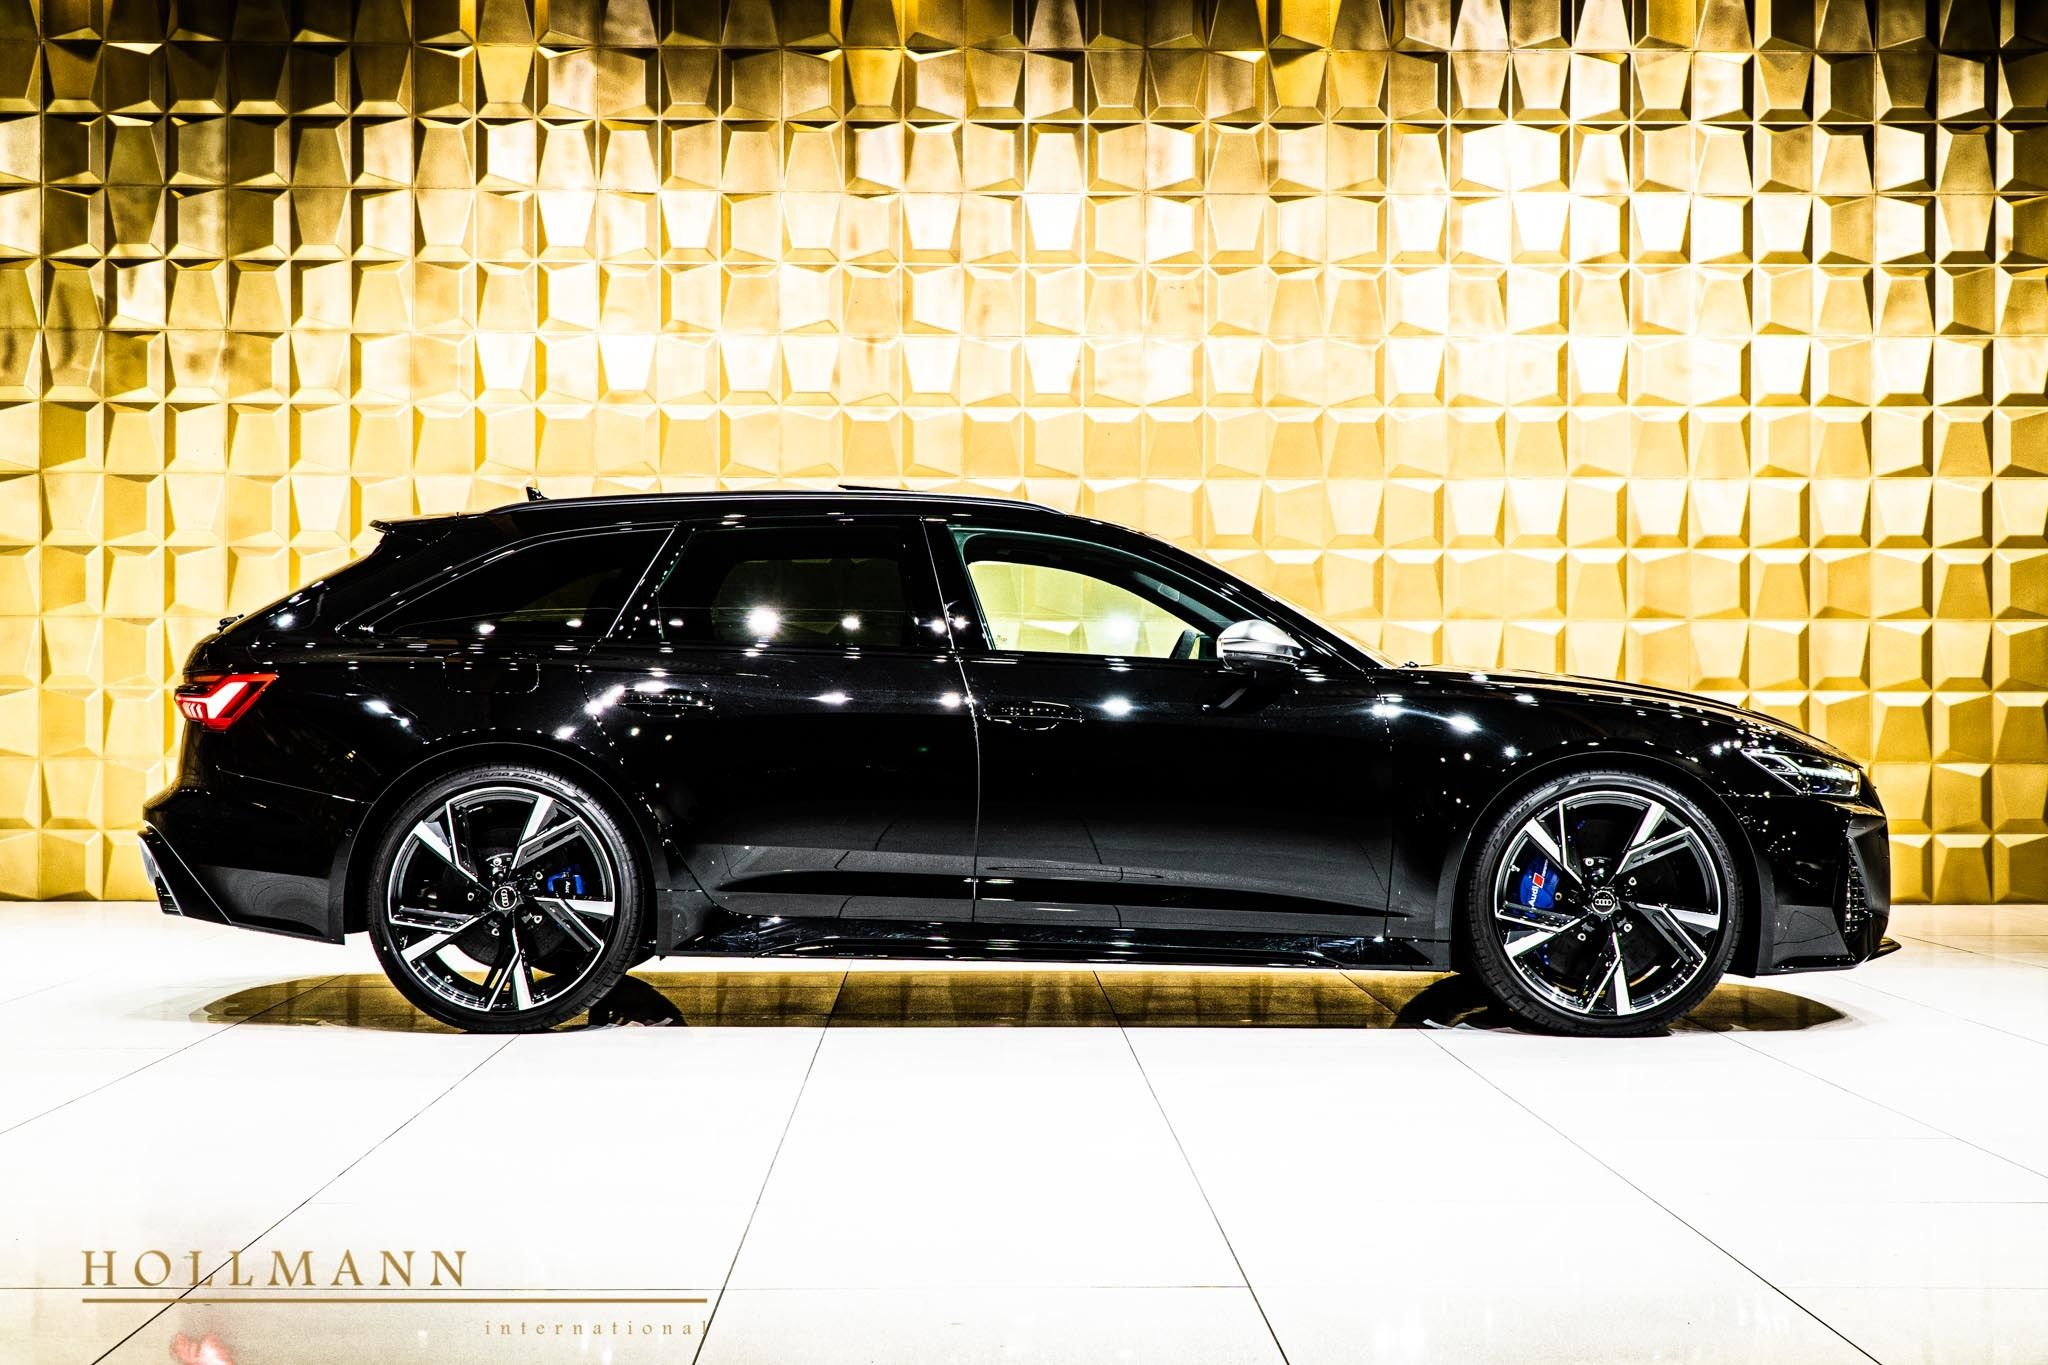 Audi Rs6 Avant Hollmann International Germany For Sale On Luxurypulse In 2020 Audi Rs6 Audi How To Clean Headlights